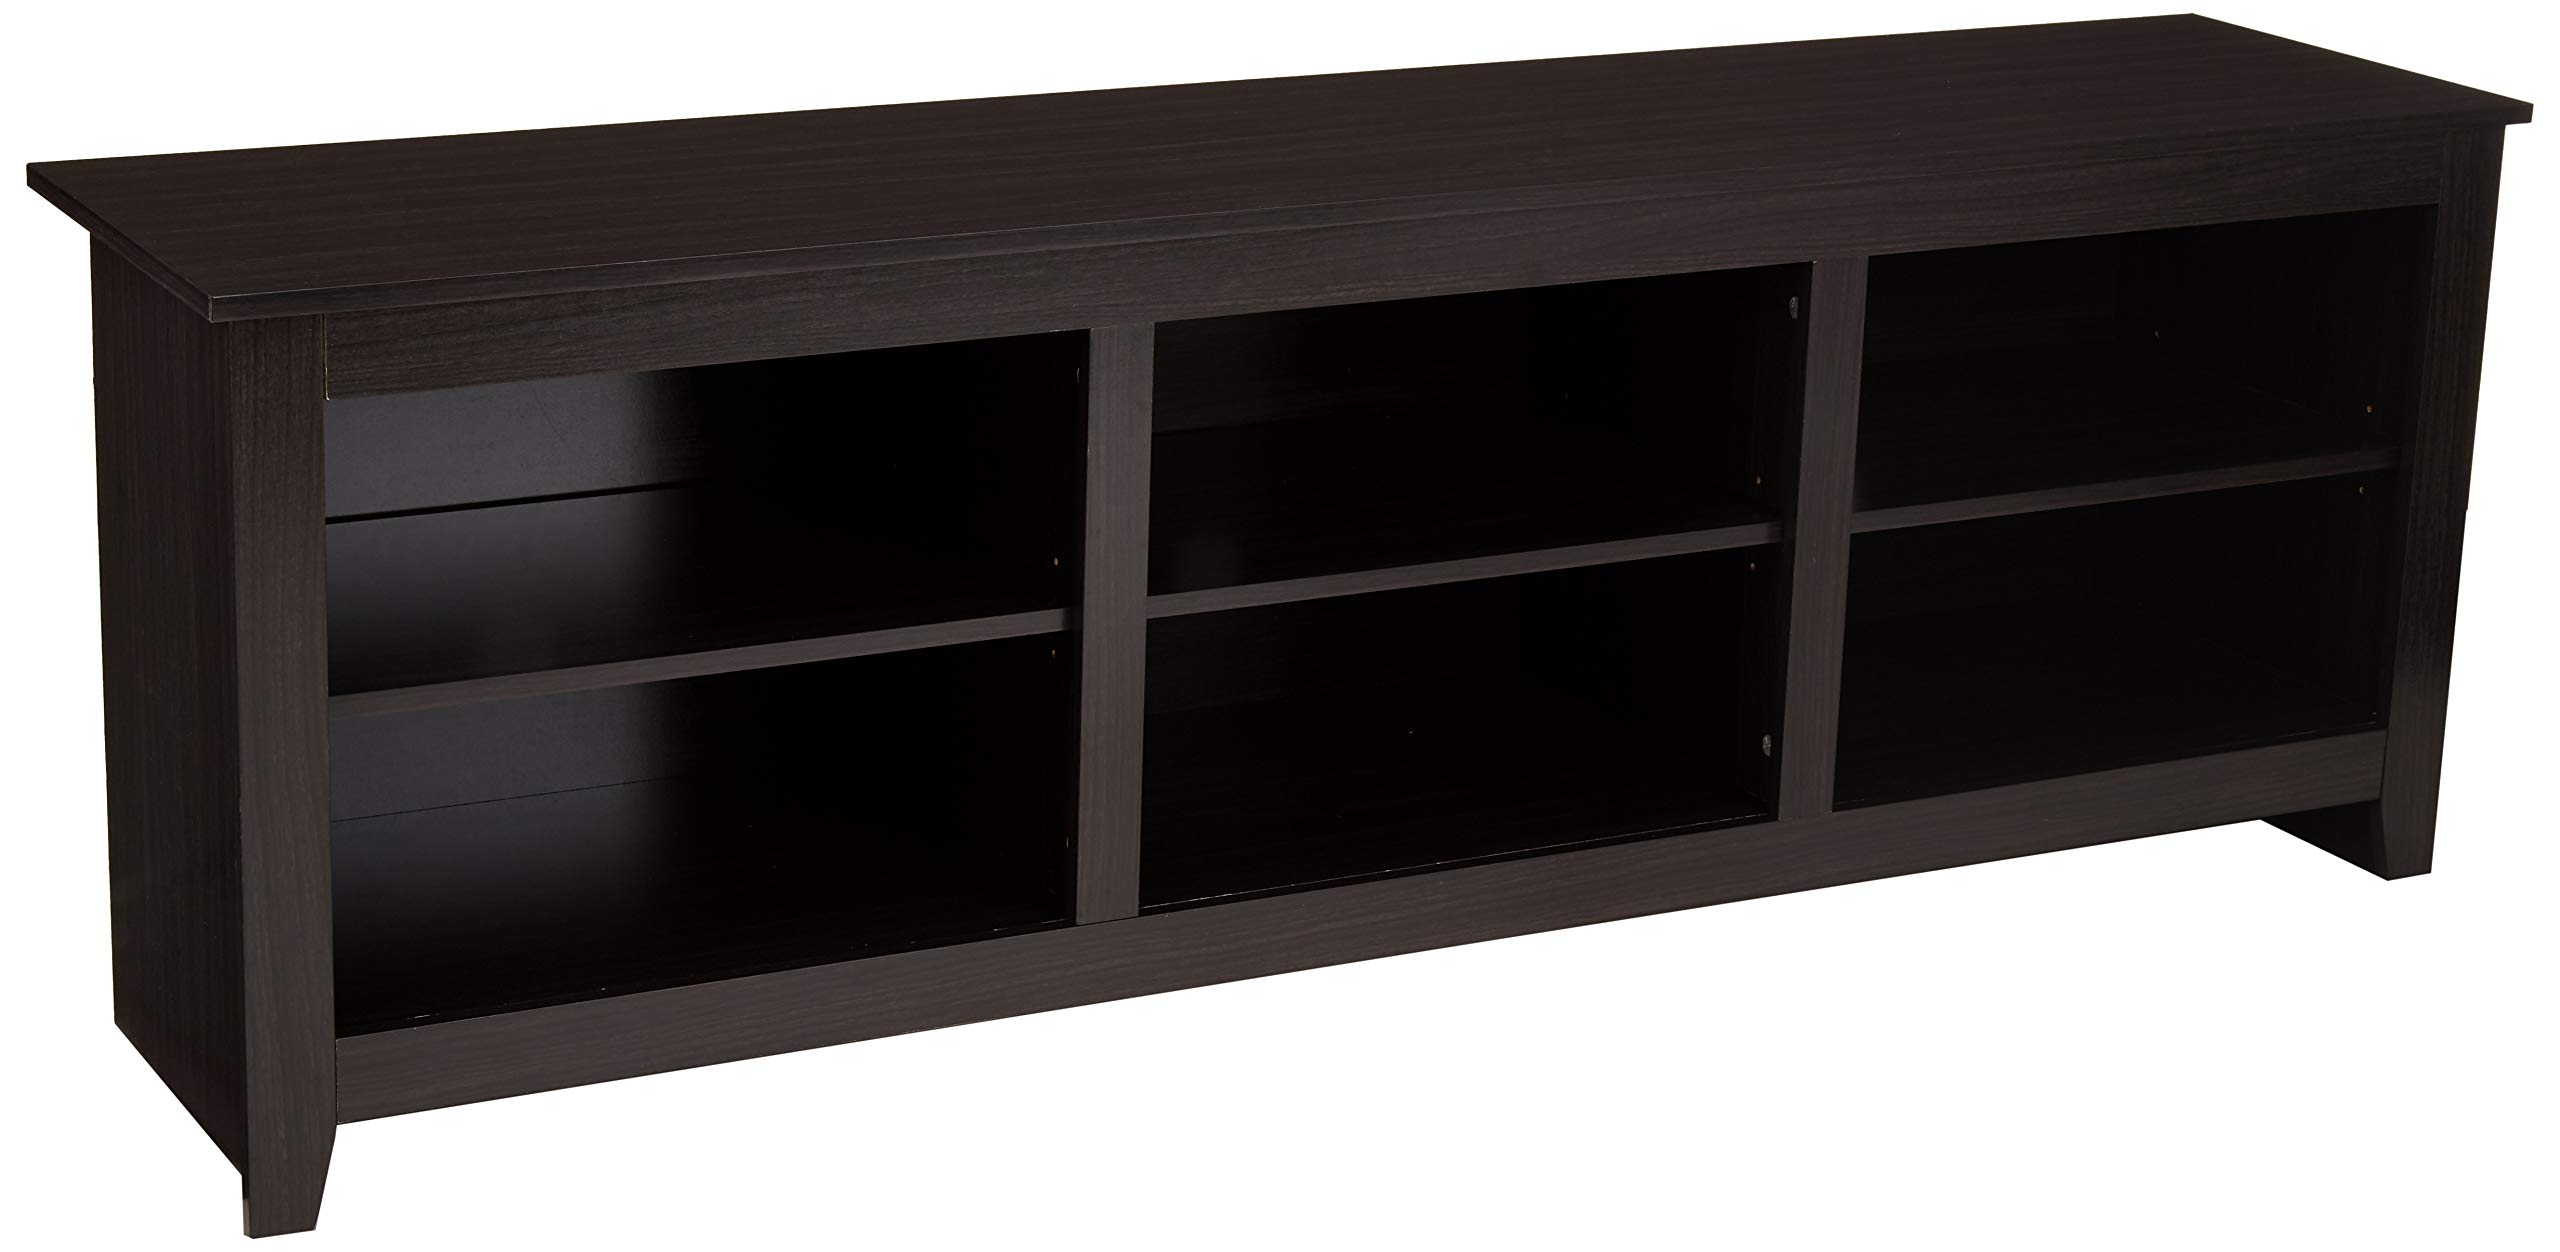 AmazonBasics Classic 70'' Wood TV Stand with Storage Console, Cappuccino by AmazonBasics